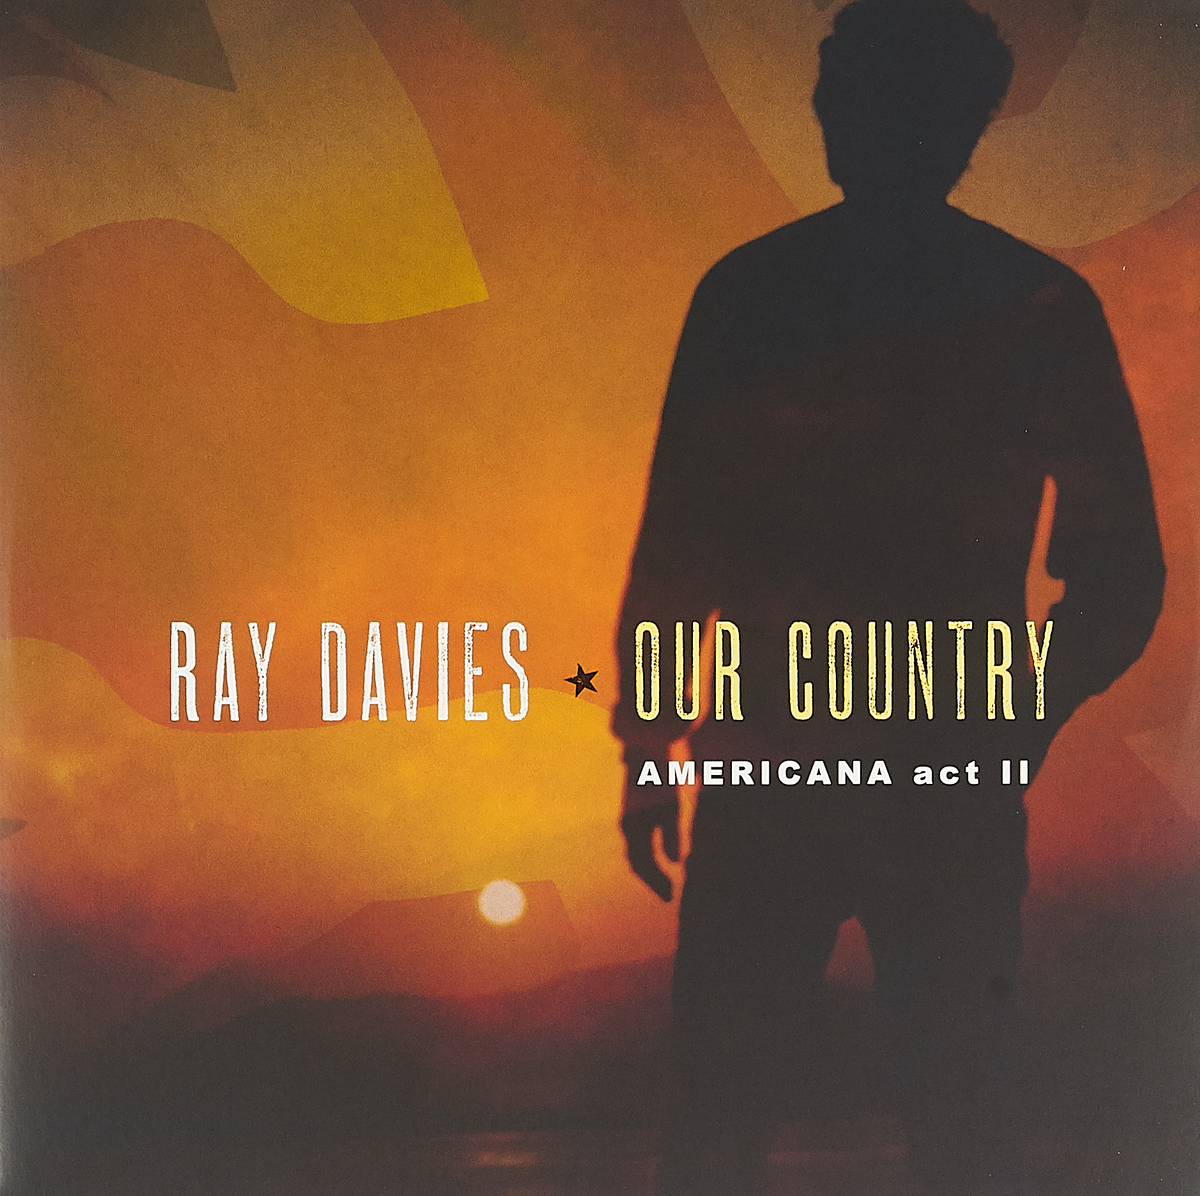 Рэй Дэвис Ray Davies. Our Country: Americana Act 2 (2 LP) ray davies ray davies our country americana act 2 2 lp